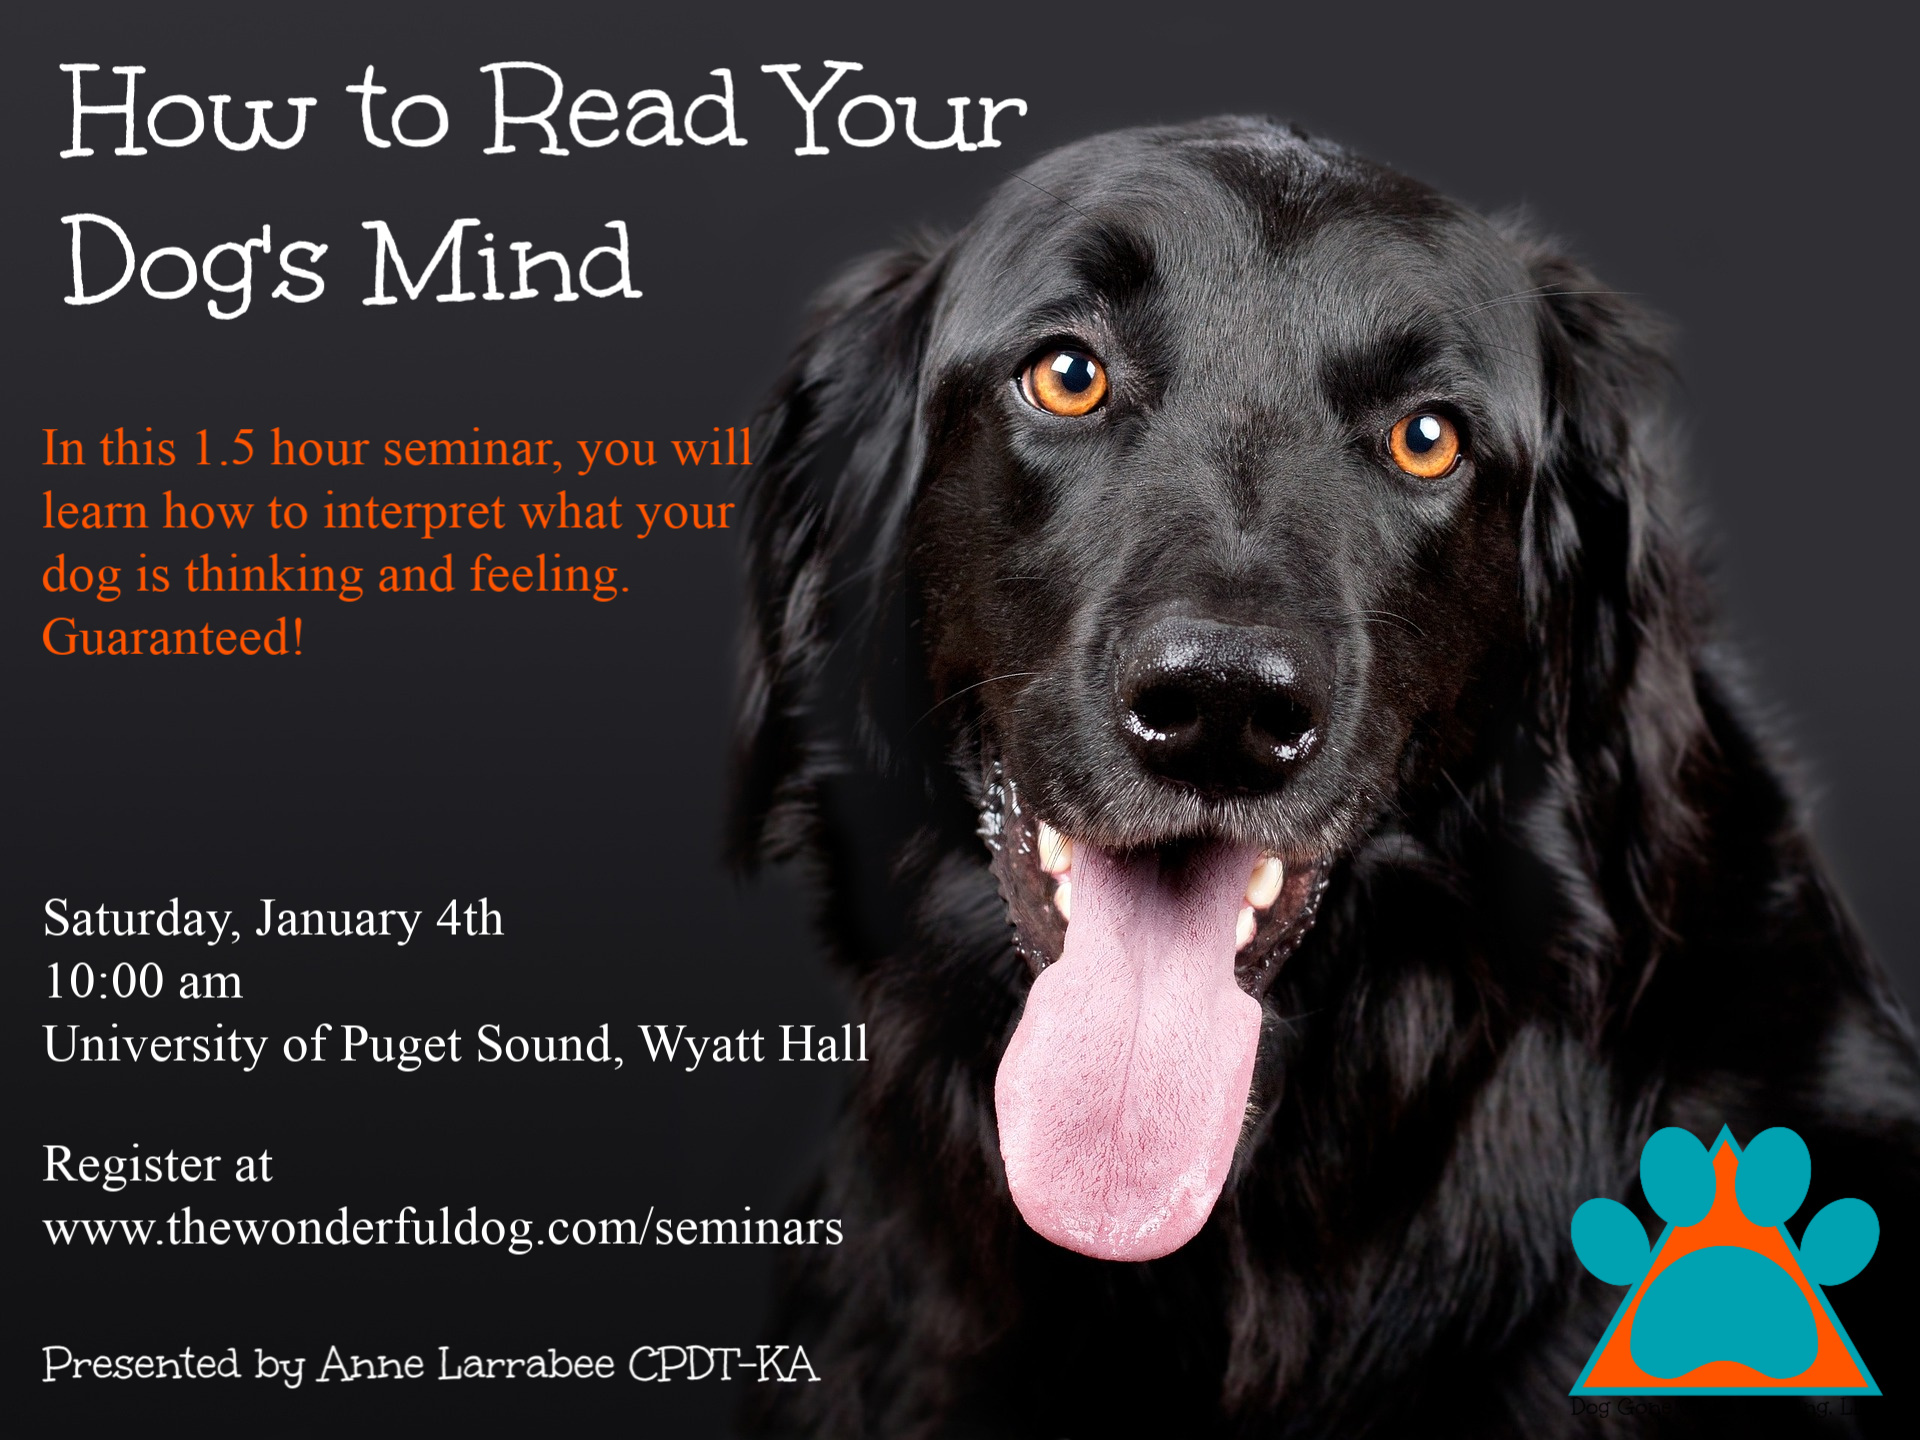 How to read your dog's mind